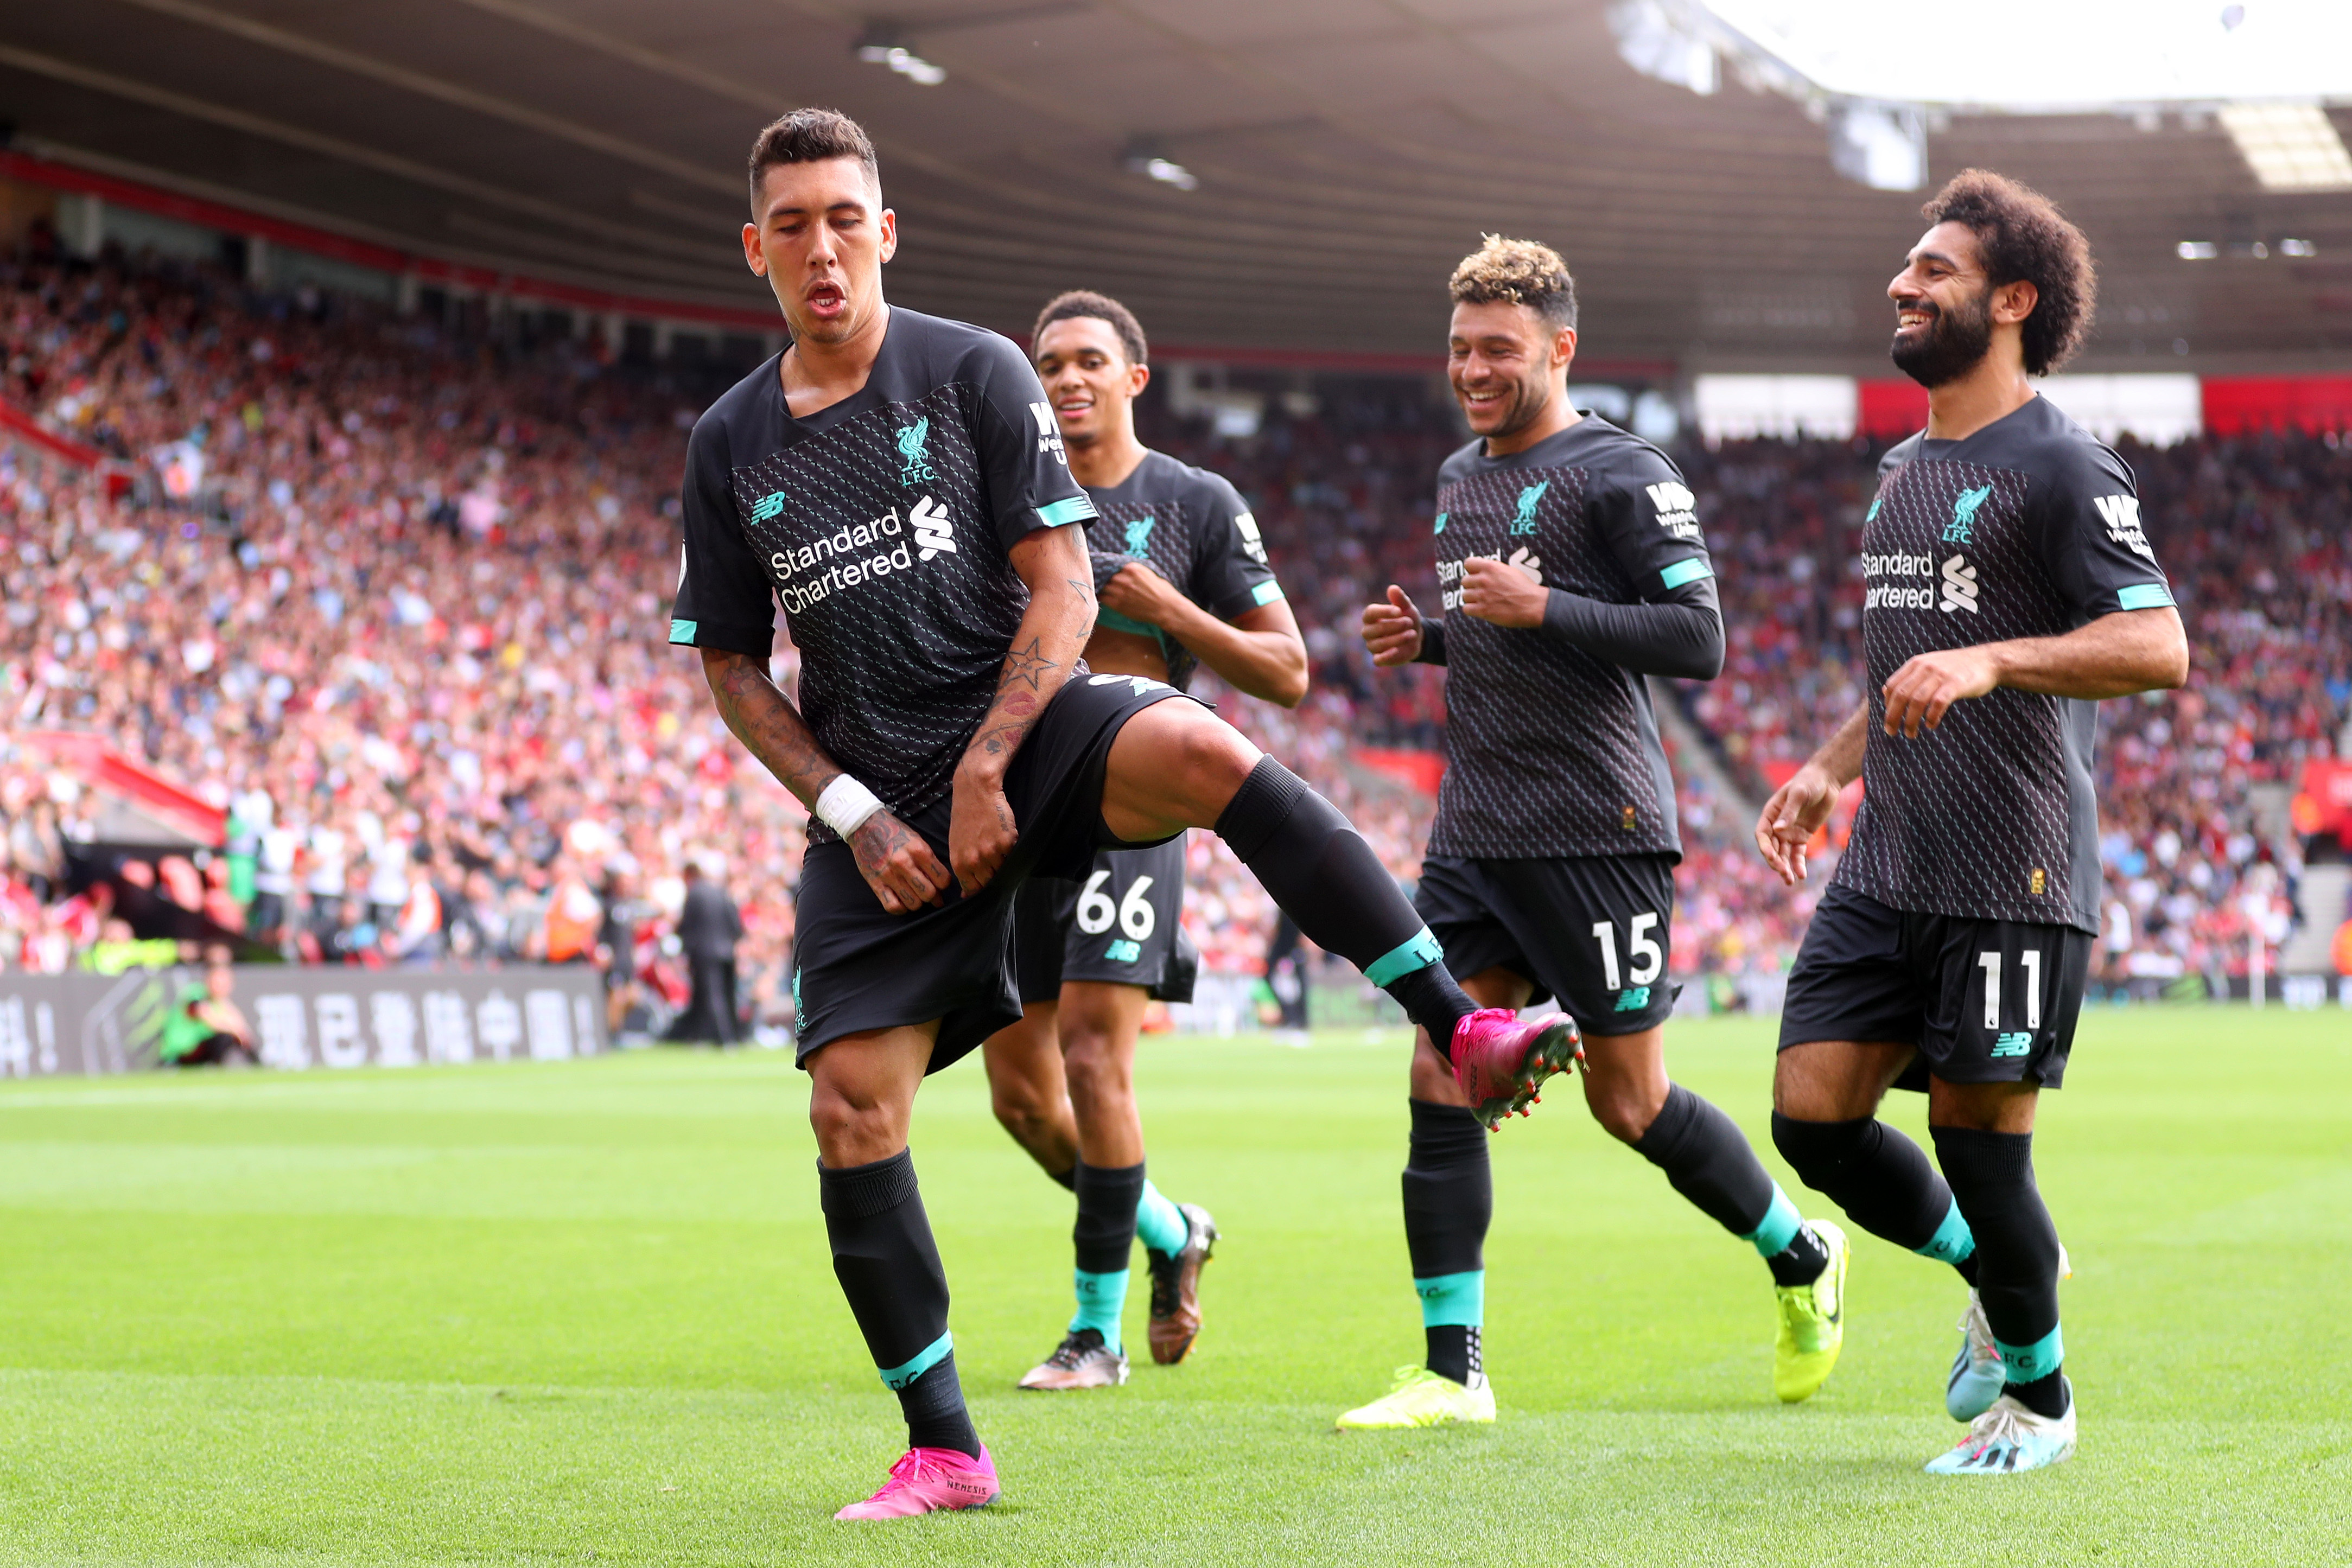 Tottenham vs Liverpool: Everything to Know About the 2019